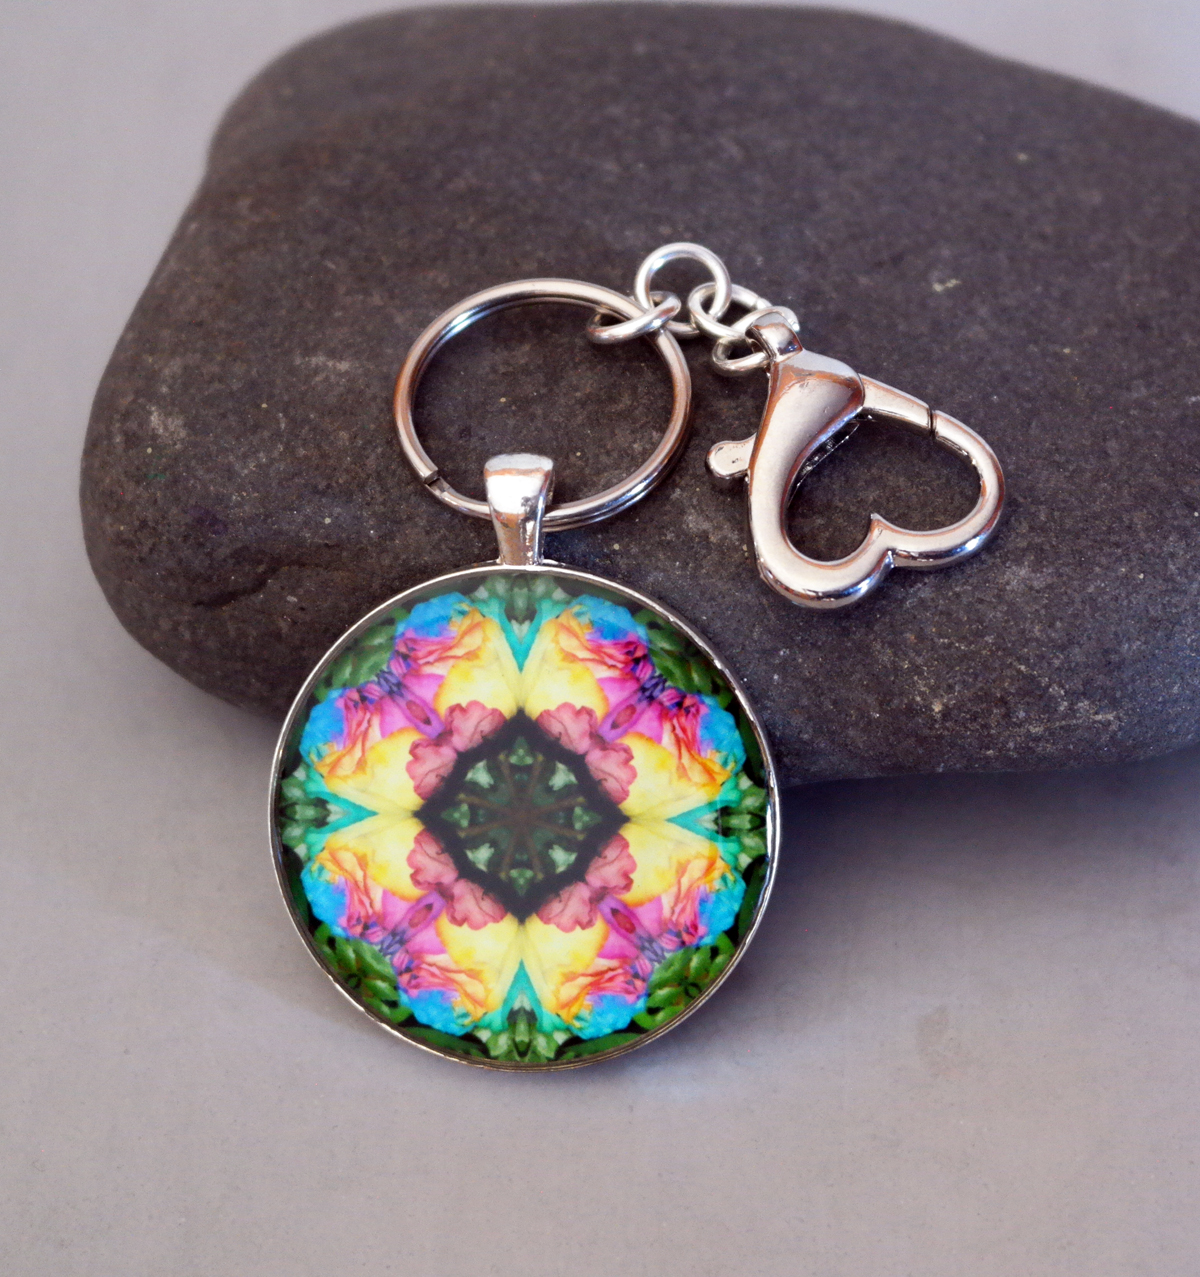 Rose Chakra Purse Charm Keychain Zen Boho Chic Mandala New Age Sacred Geometry Hippie Kaleidoscope Gypsy Unique Gift For Her Ornate Opus